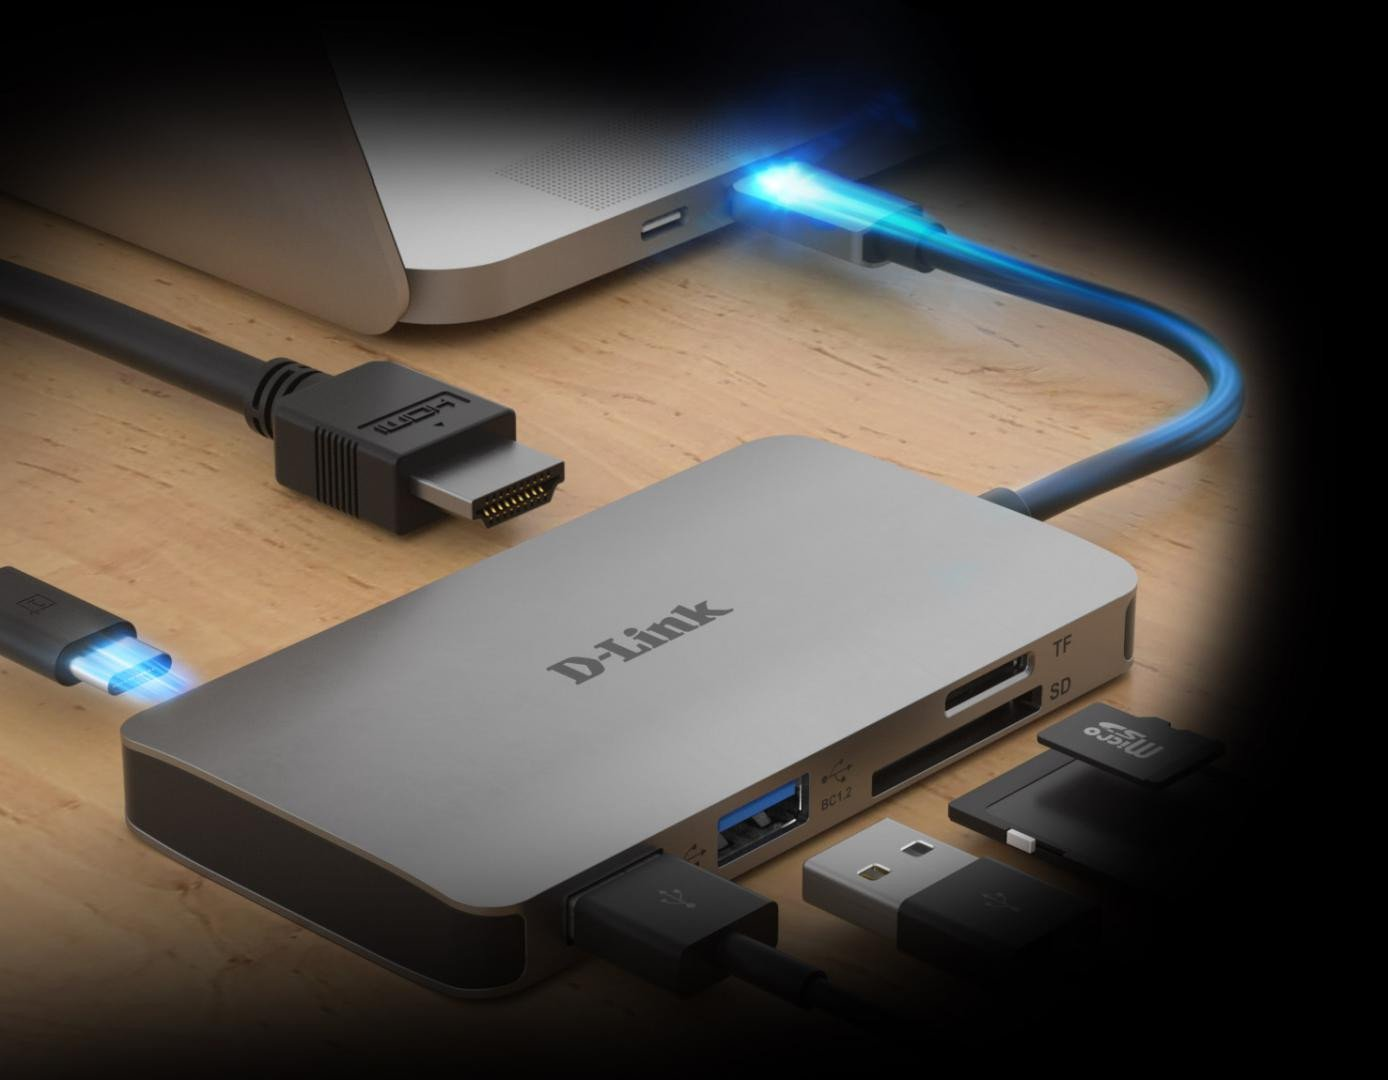 D-Link 6-in-1 USB-C Hub with HDMI, SD/microSD card reader and power delivery, DUB-M610, 1* USB-C connector with USB cable 11.5 cm, 1* HDMI Port, 2* USB Type-A Port (USB 3.0), 1* SD card slot, 1* microSD card slot, 1* USB-C power delivery. - imaginea 1